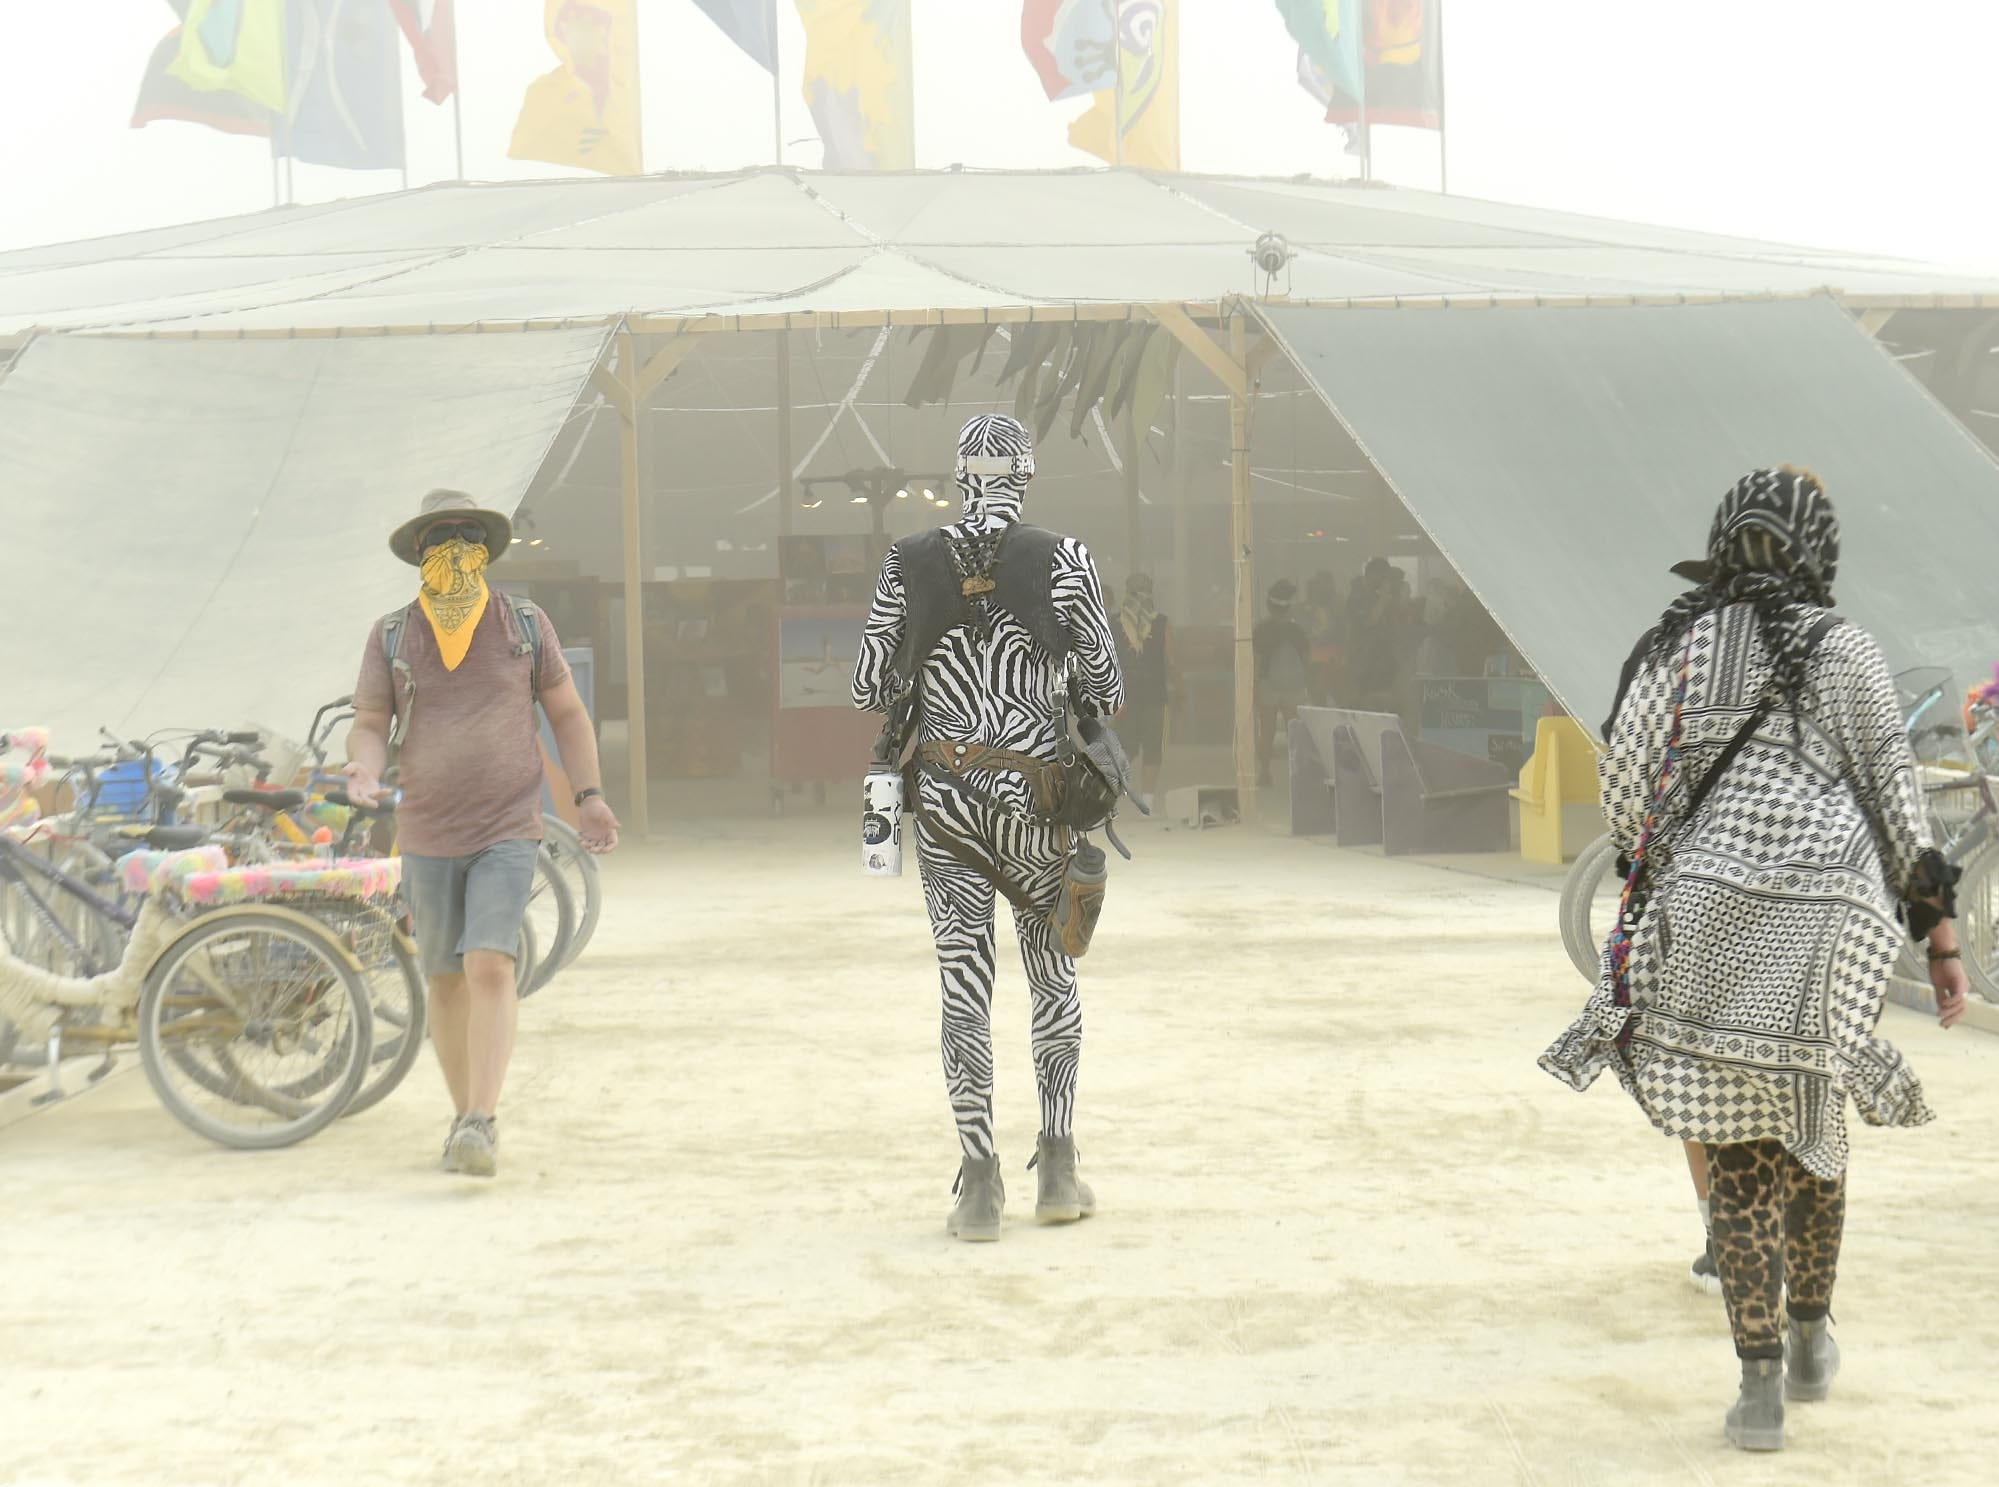 Images from a very dusty opening day at Burning Man on Sunday, Aug. 26, 2018.